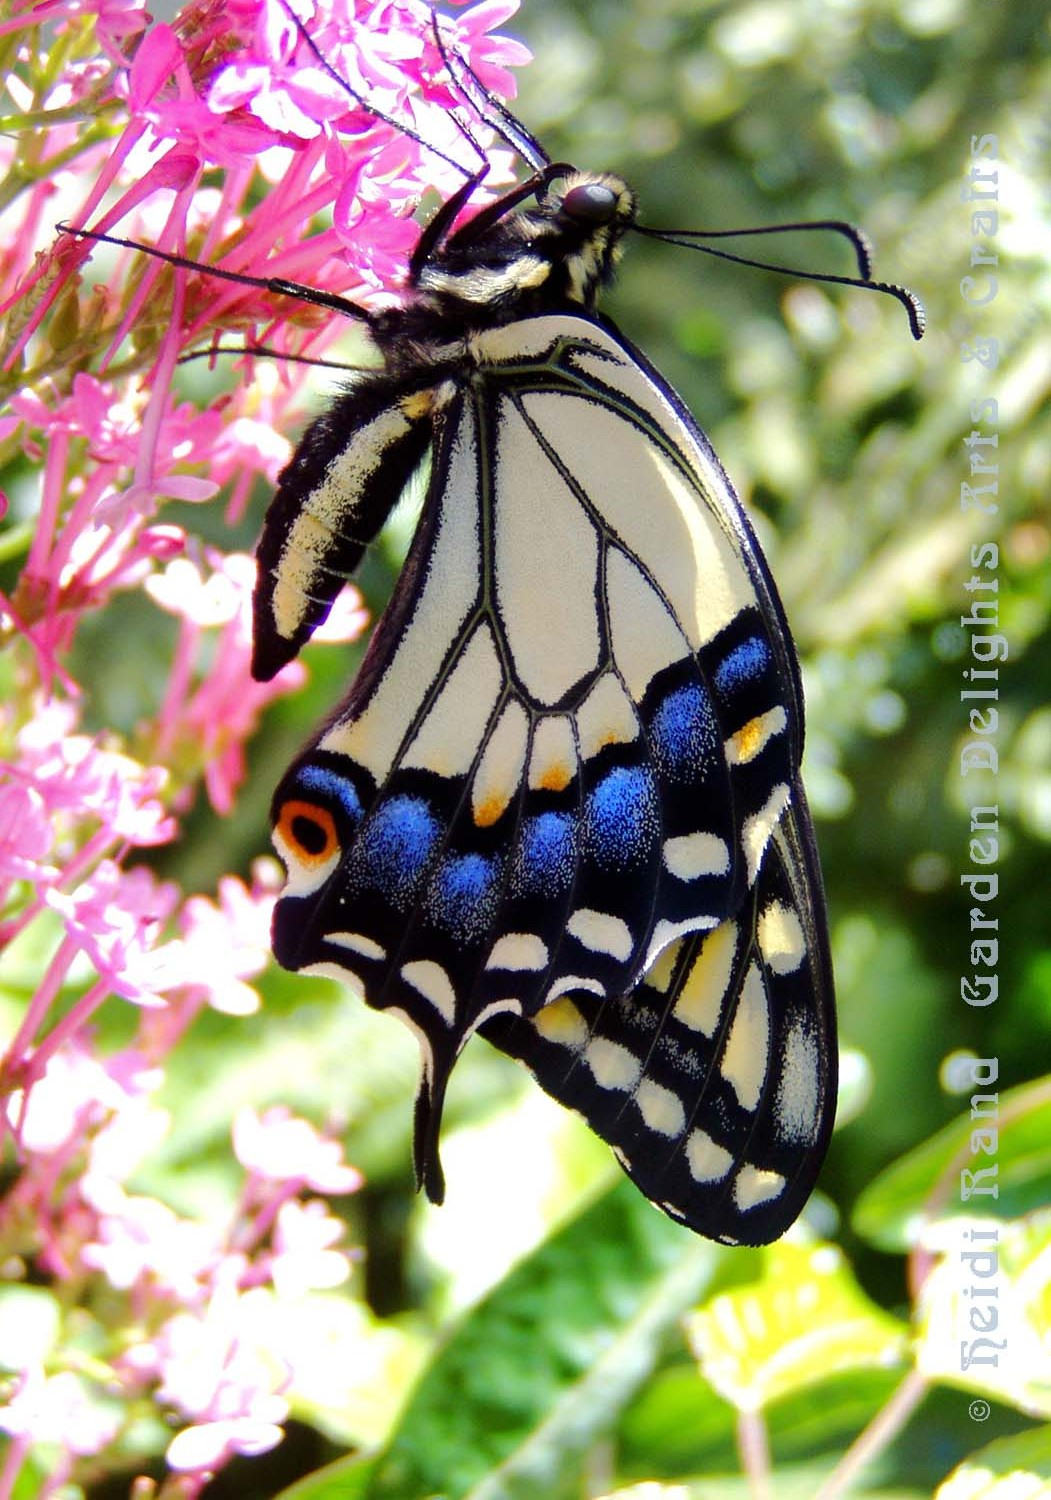 Swallowtail butterfly side